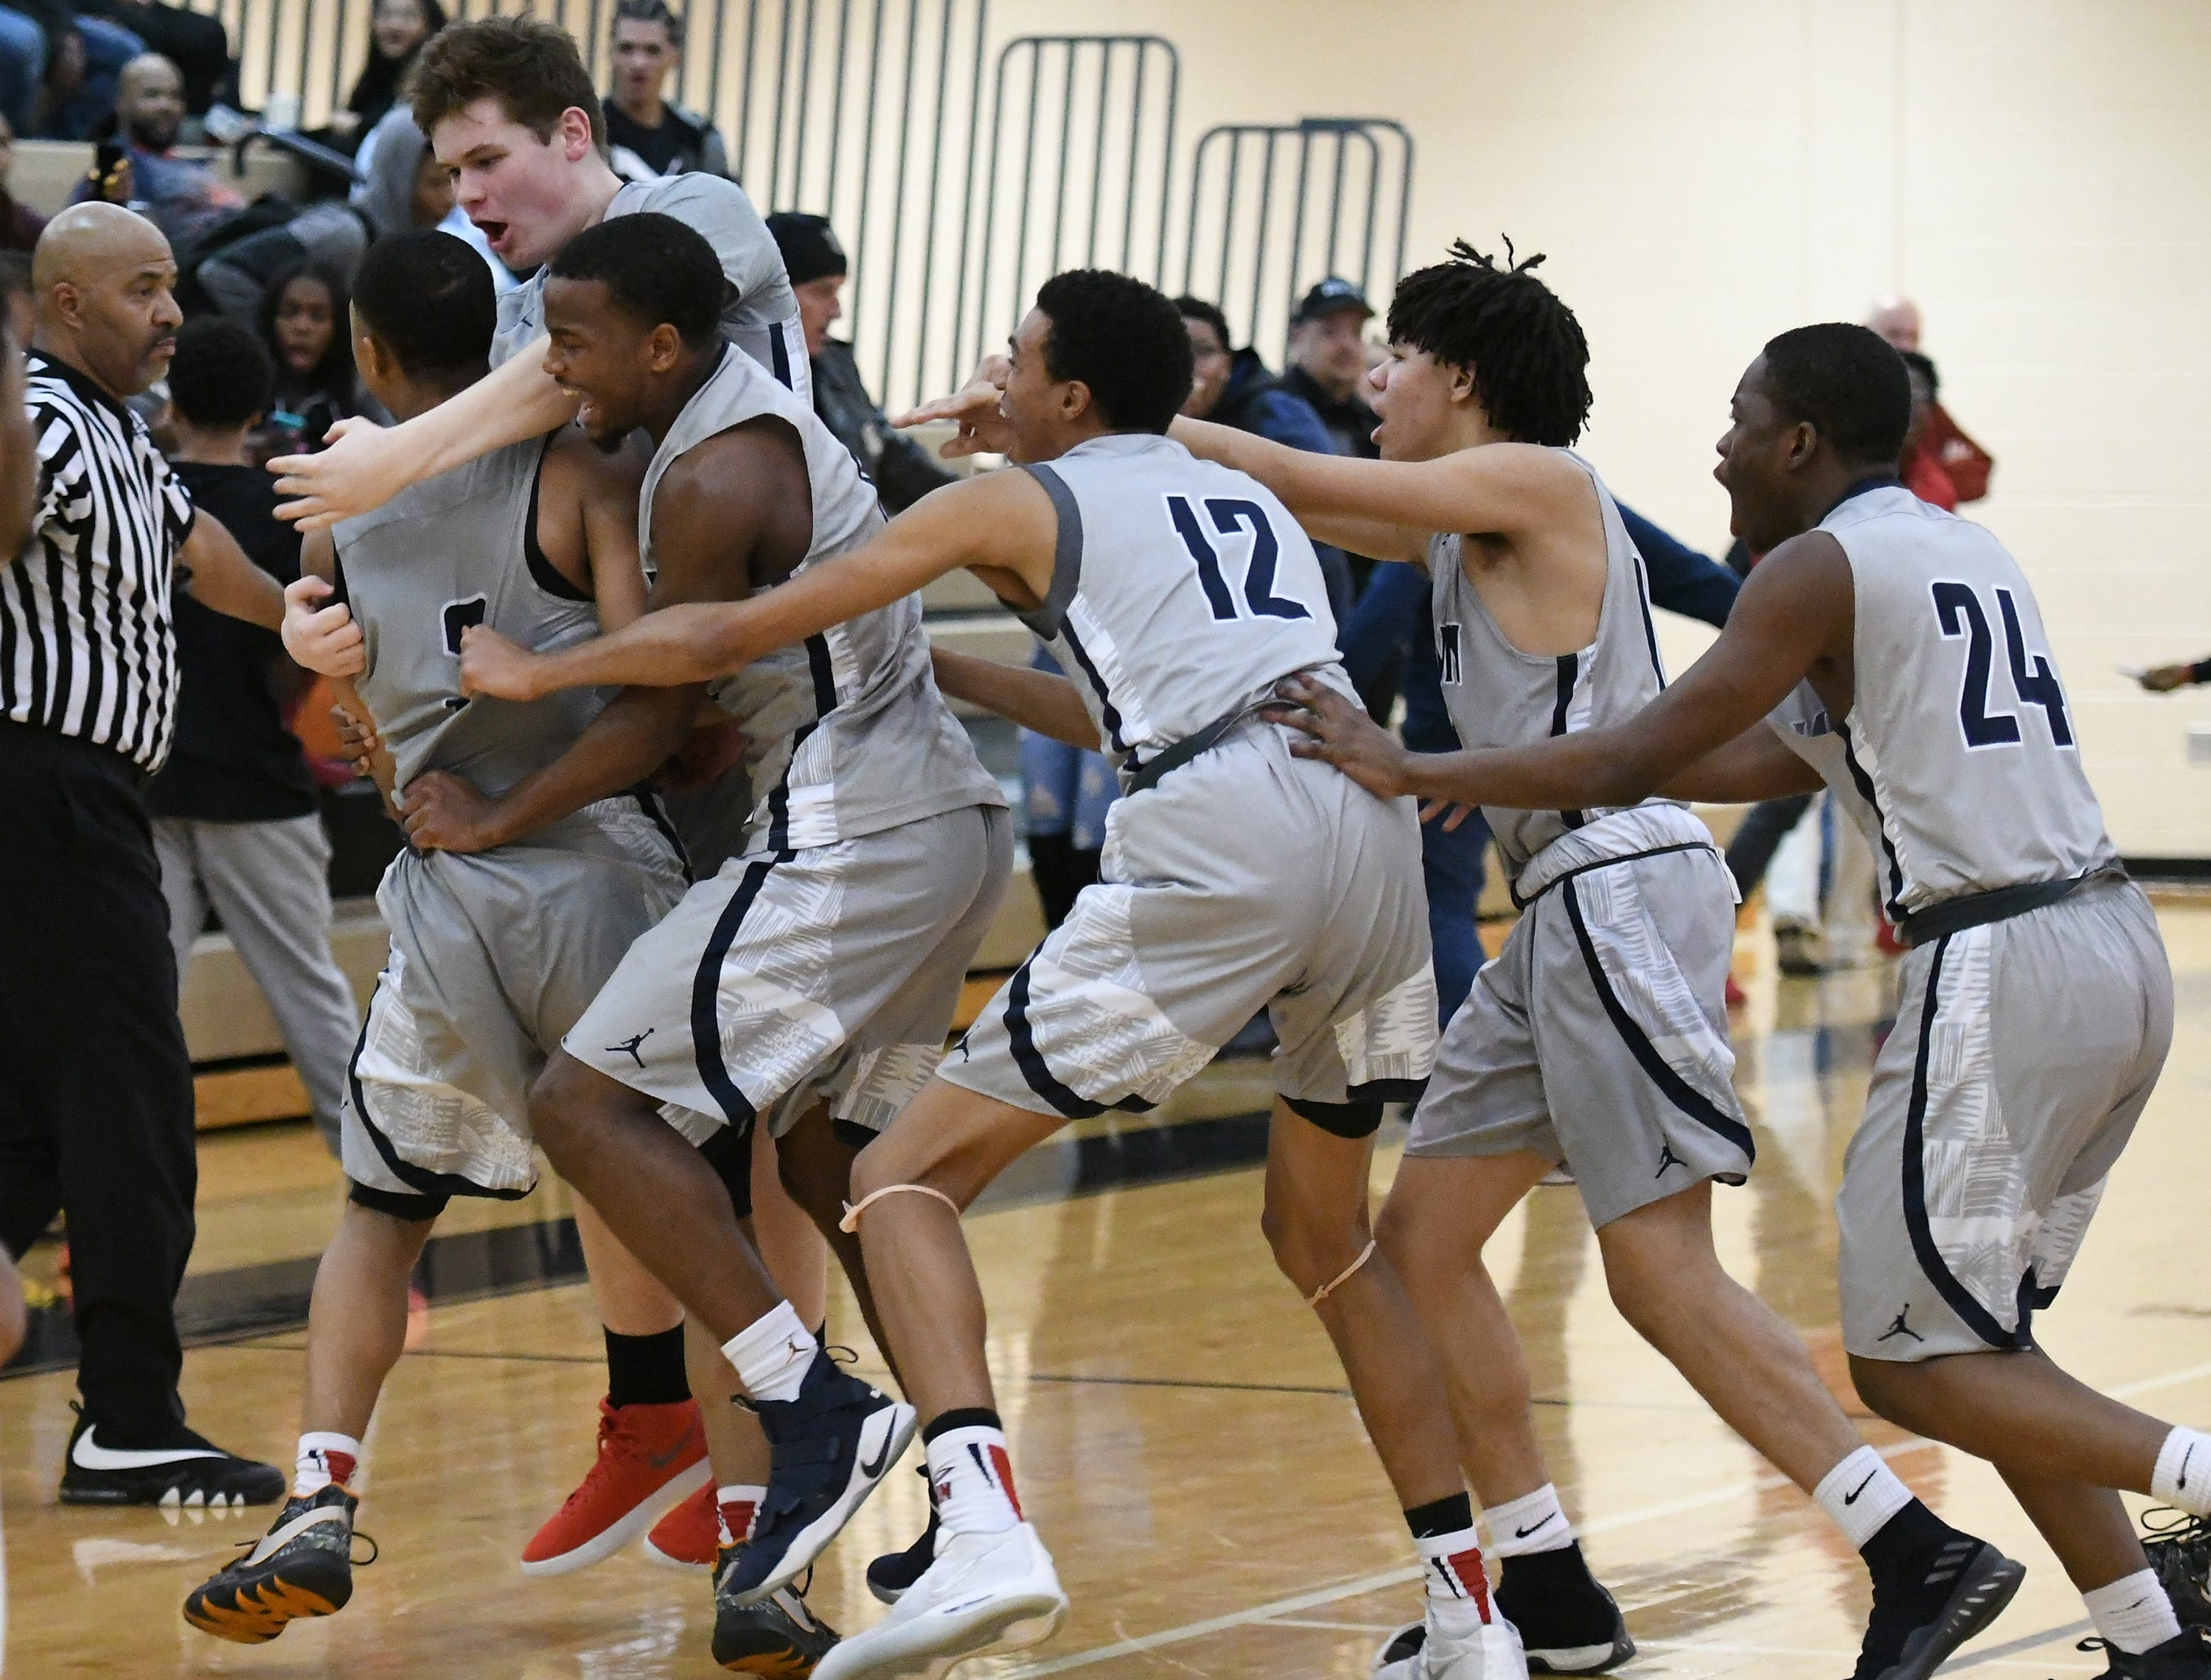 John Glenn High School's Joe Moon IV, far left, is mobbed by his teammate after hitting a three pointer at the end of regulation to send their game against Belleville High School into overtime. Moon would score 43 points on the night, but it wouldn't be enough to beat Belleville, who escaped with a 81-78 win.